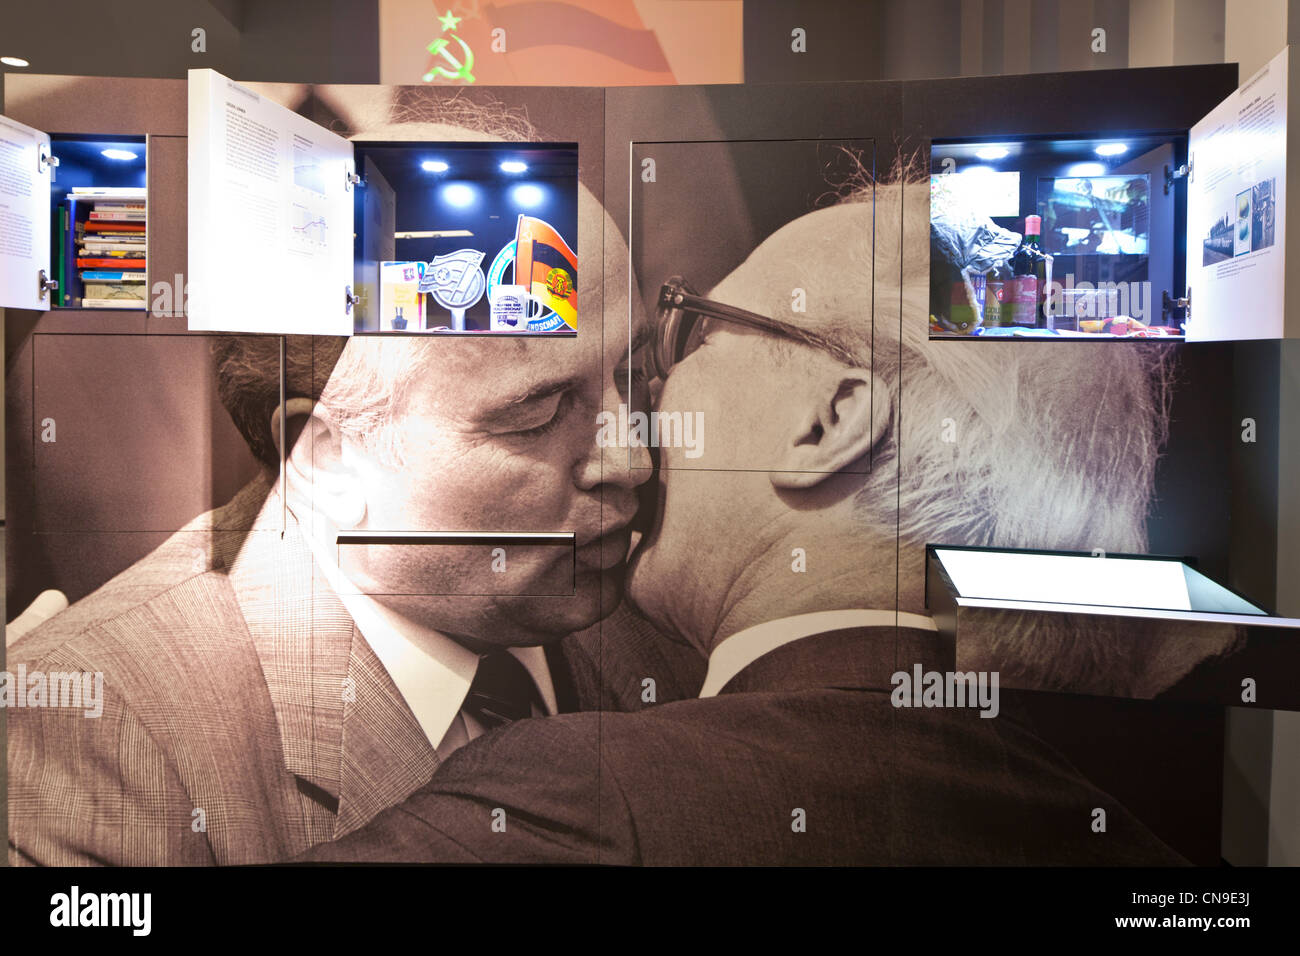 Germany, Berlin, DDR Museum, a museum opened in 2006 to recall the everyday life of former East Germany, kiss between - Stock Image